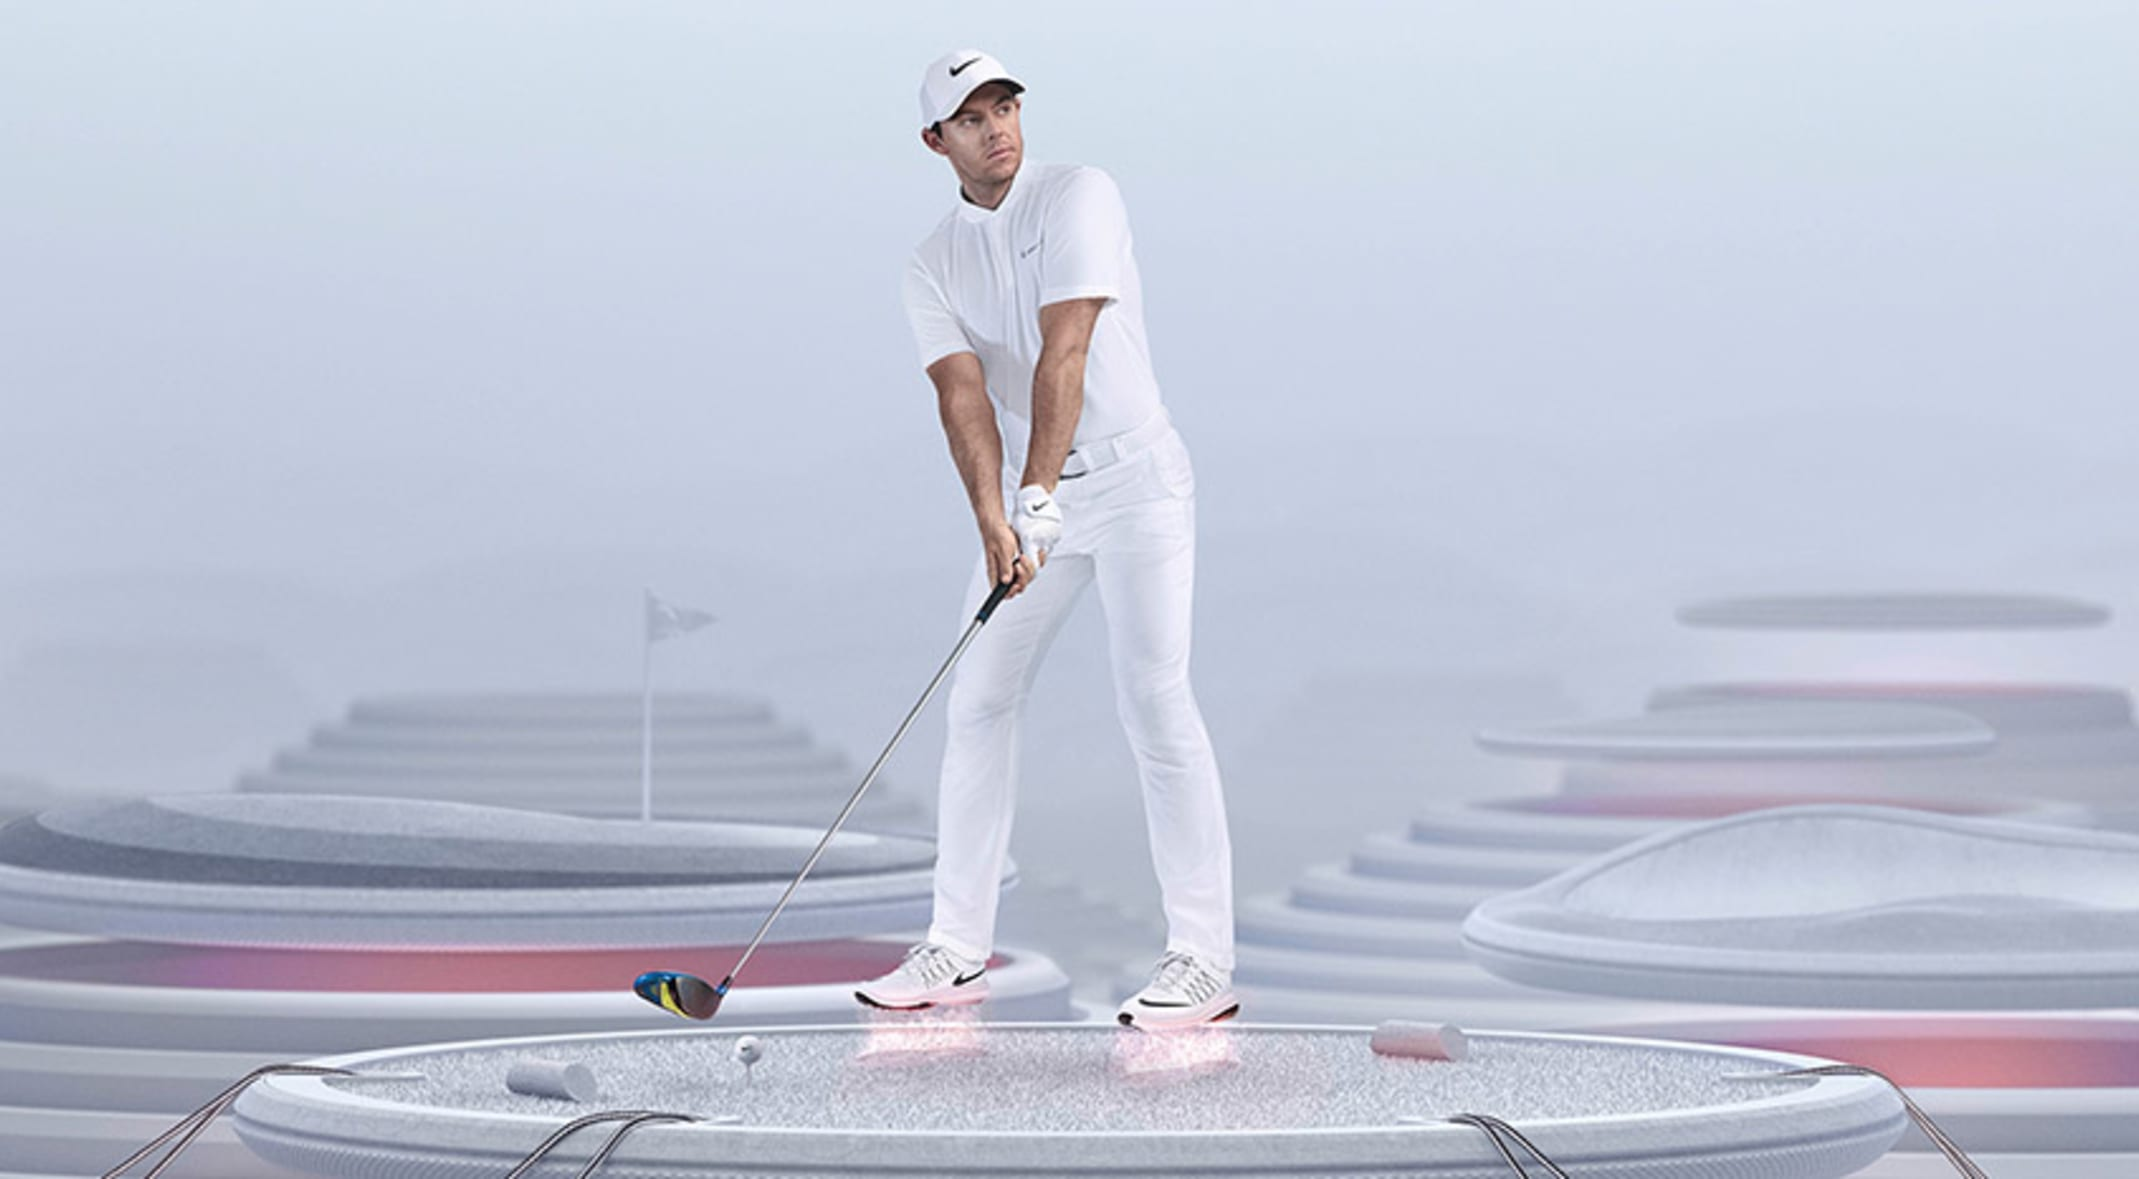 7f38a9655926 Rory McIlroy put the new Nike Lunar Control Vapor shoes to the test before  putting them